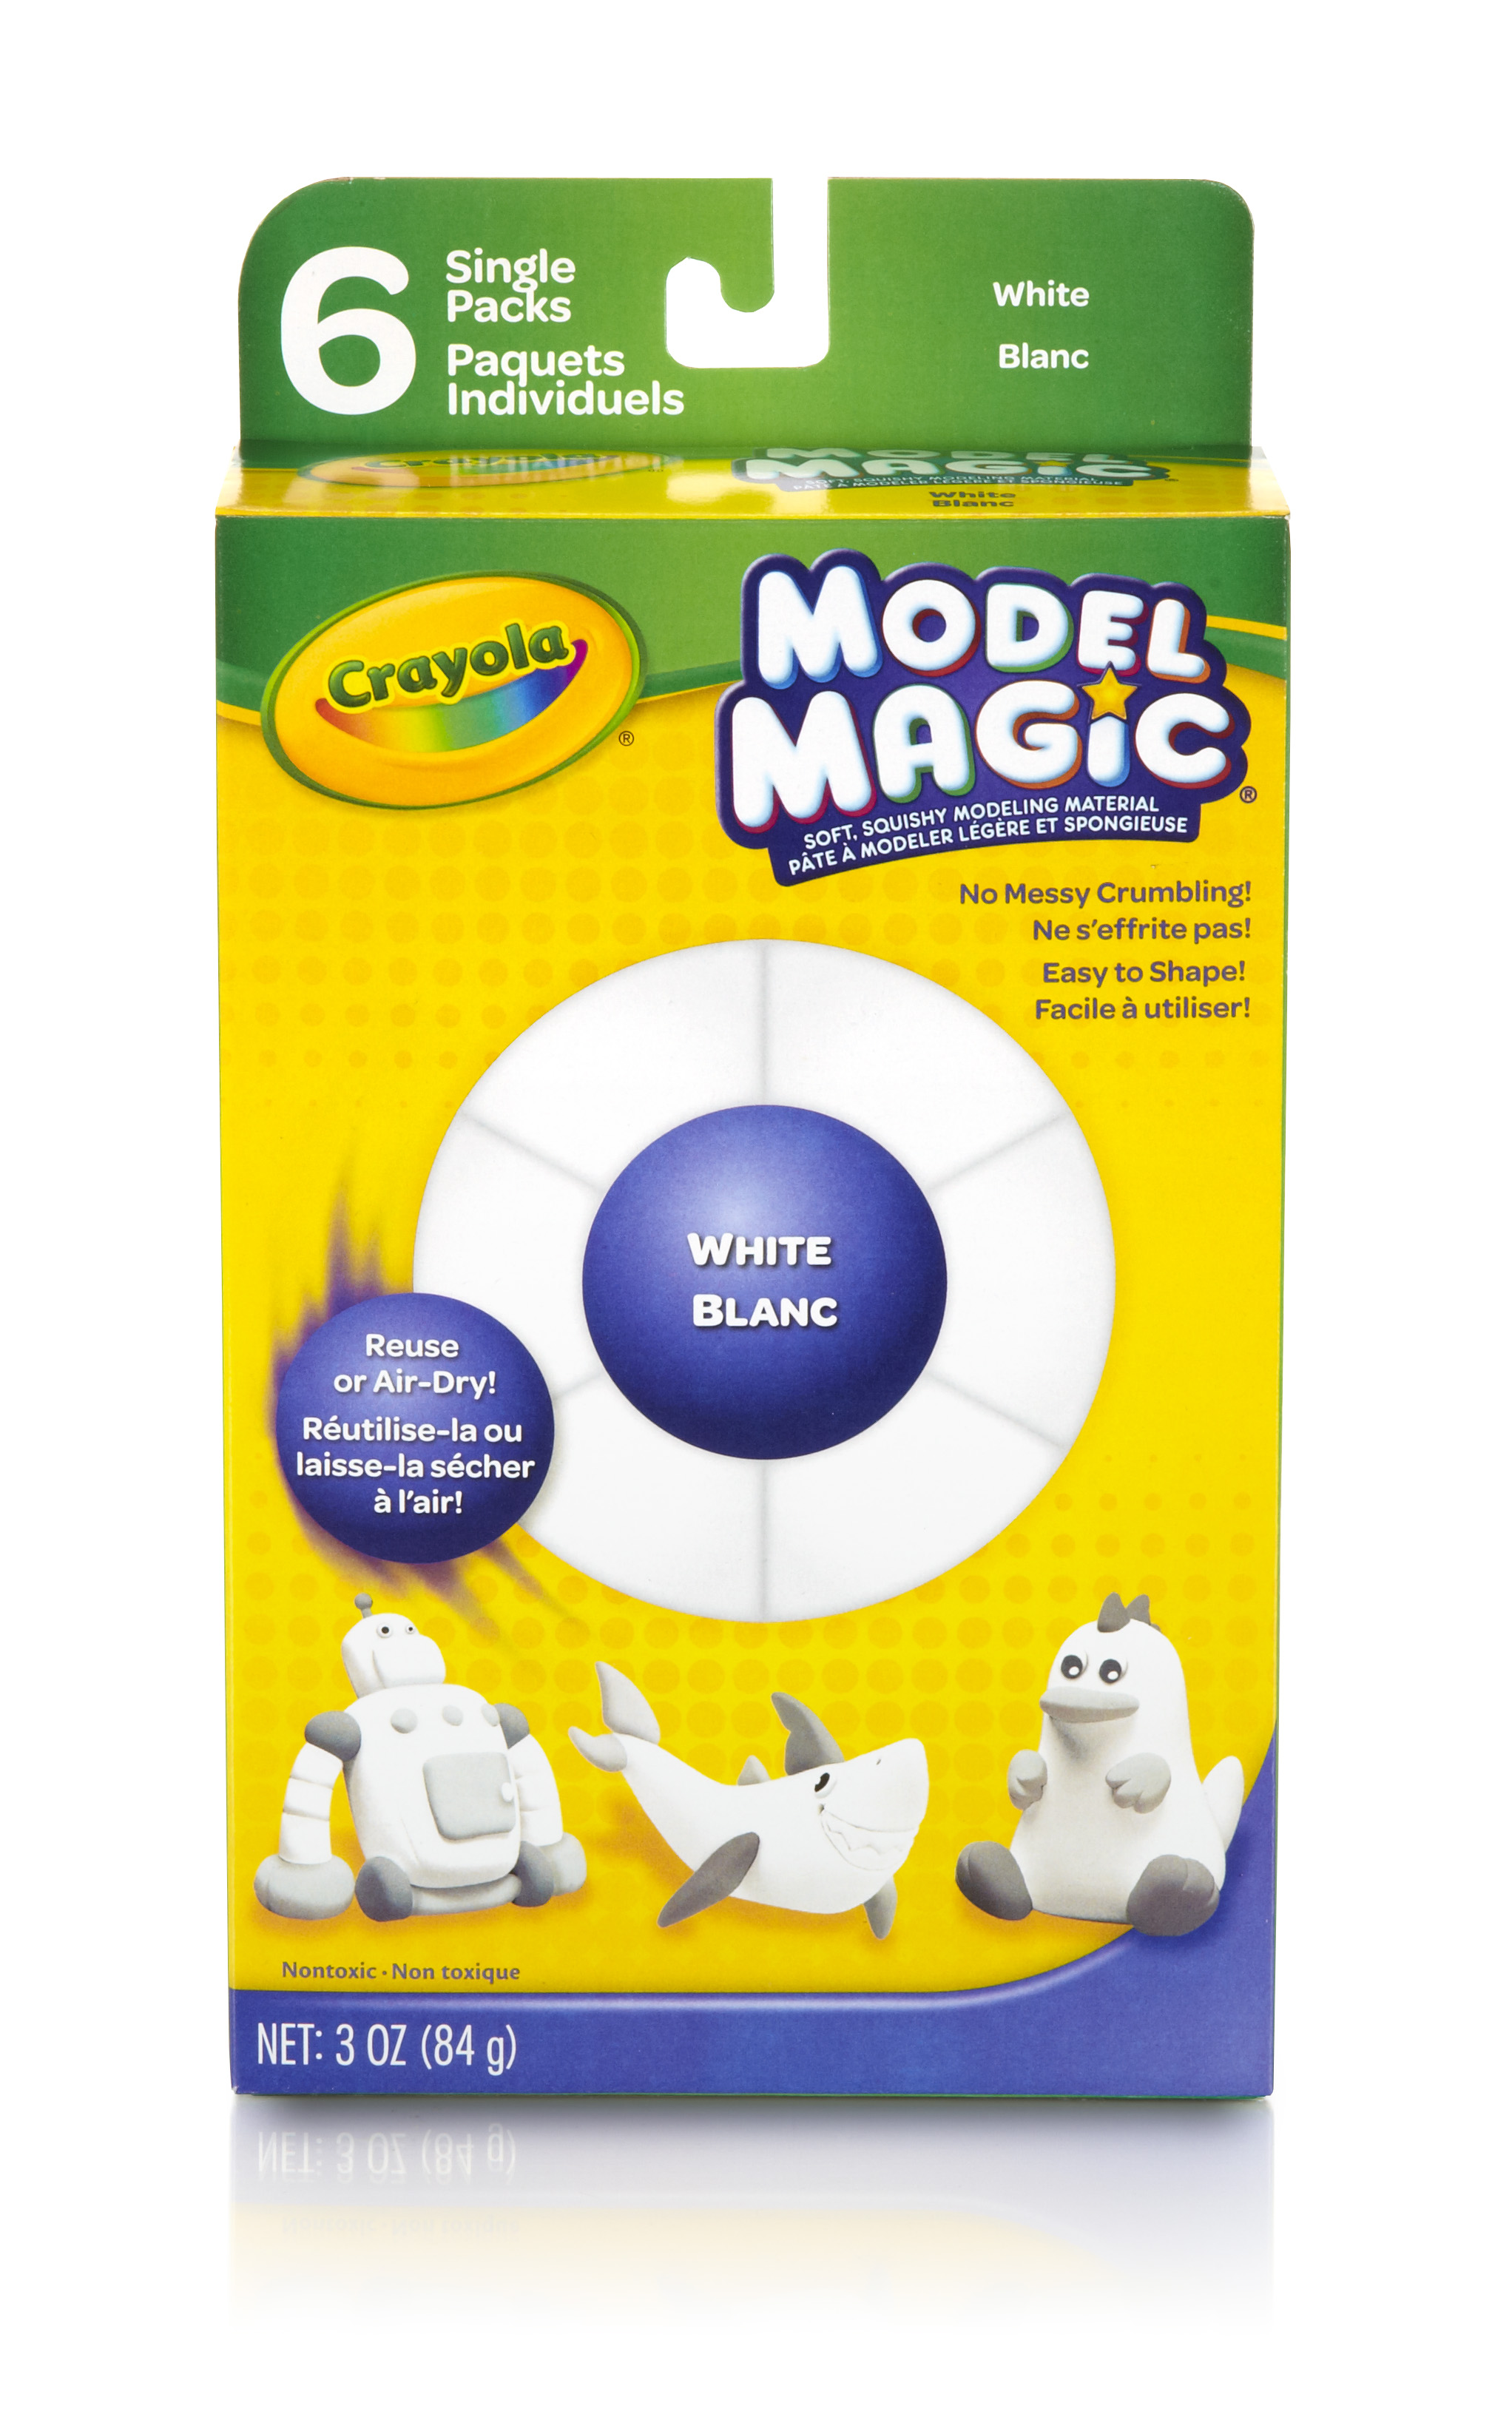 Crayola White Model Magic Modeling Material, 6 count by Crayola